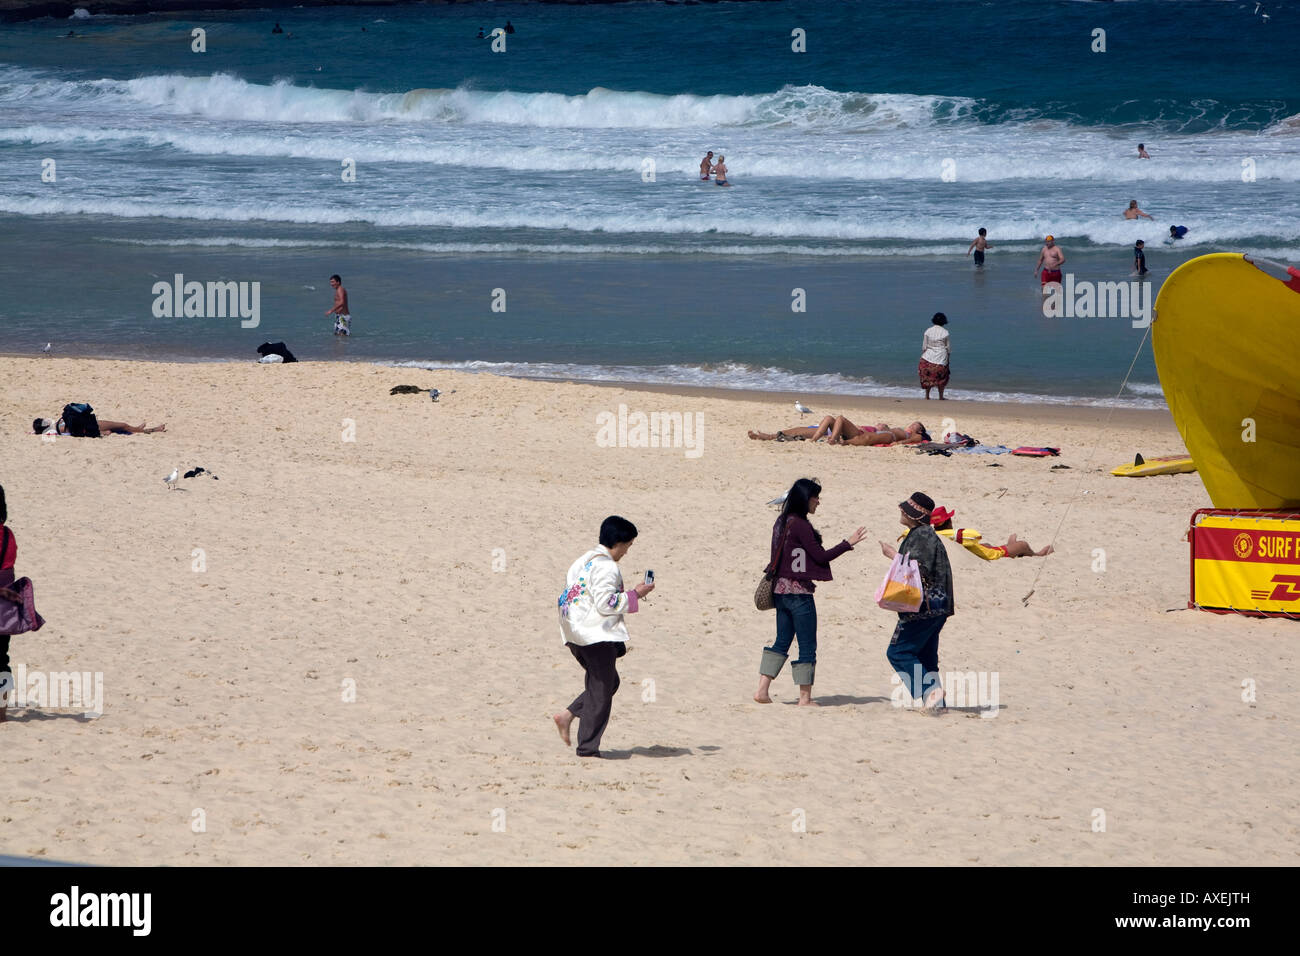 bondi beach,easter weekend 2008, sydney,australia - Stock Image